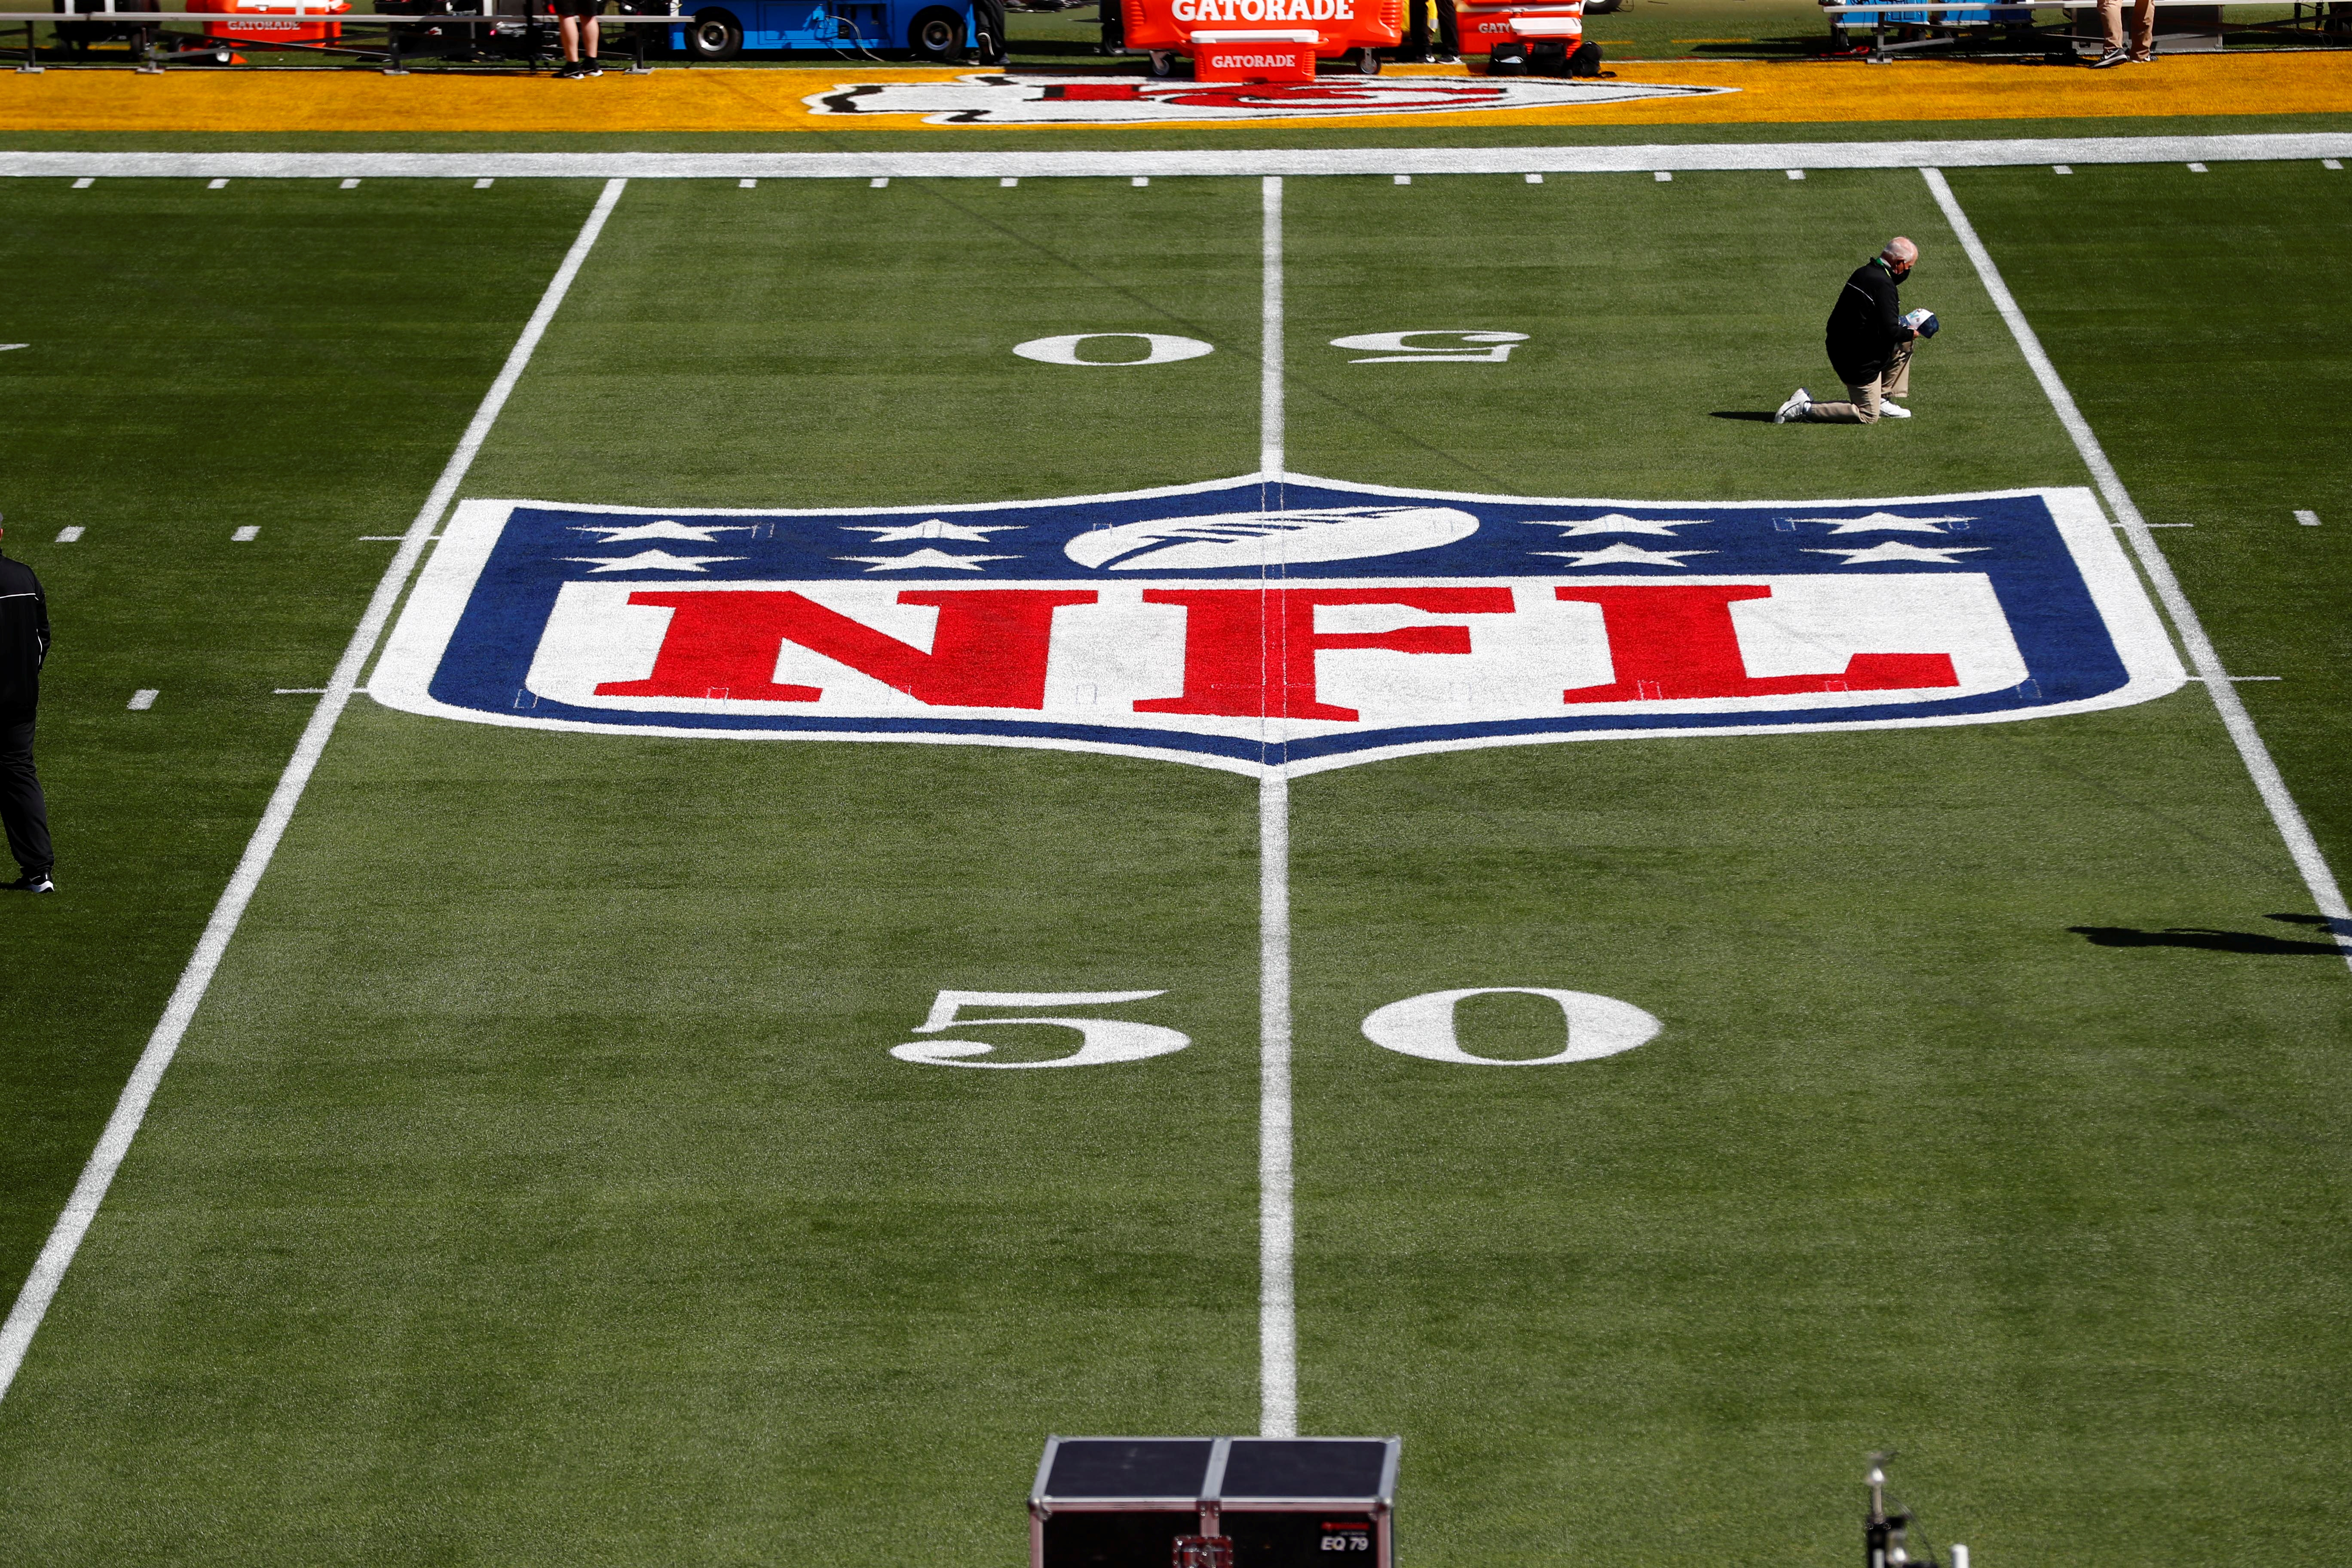 Feb 7, 2020; Tampa, FL, USA;  General view of the NFL Shield logo on the field before Super Bowl LV between the Tampa Bay Buccaneers and the Kansas City Chiefs at Raymond James Stadium.  Mandatory Credit: Kim Klement-USA TODAY Sports/File Photo